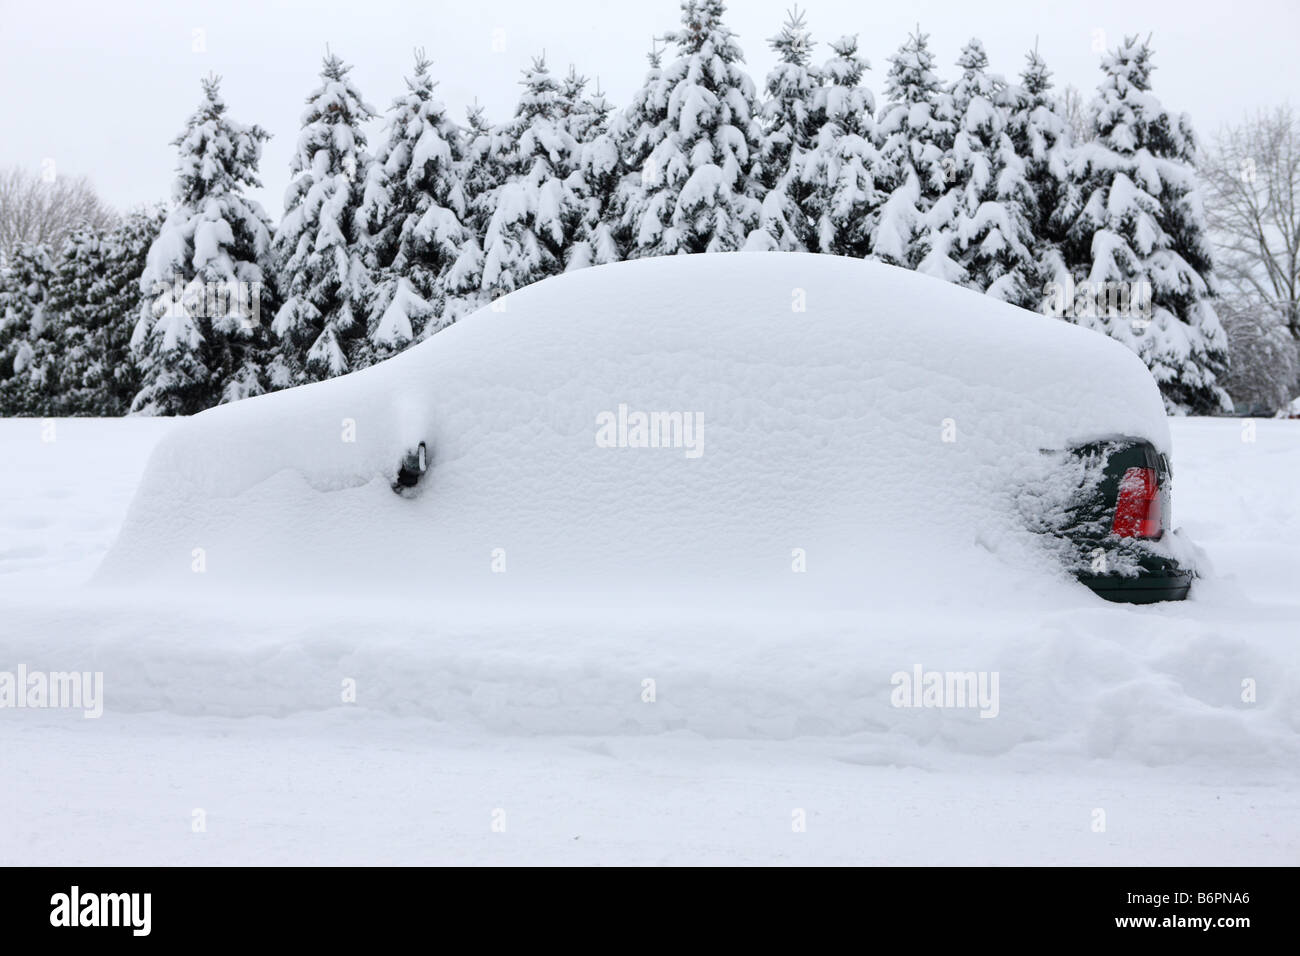 Car completely buried from snow storm - Stock Image